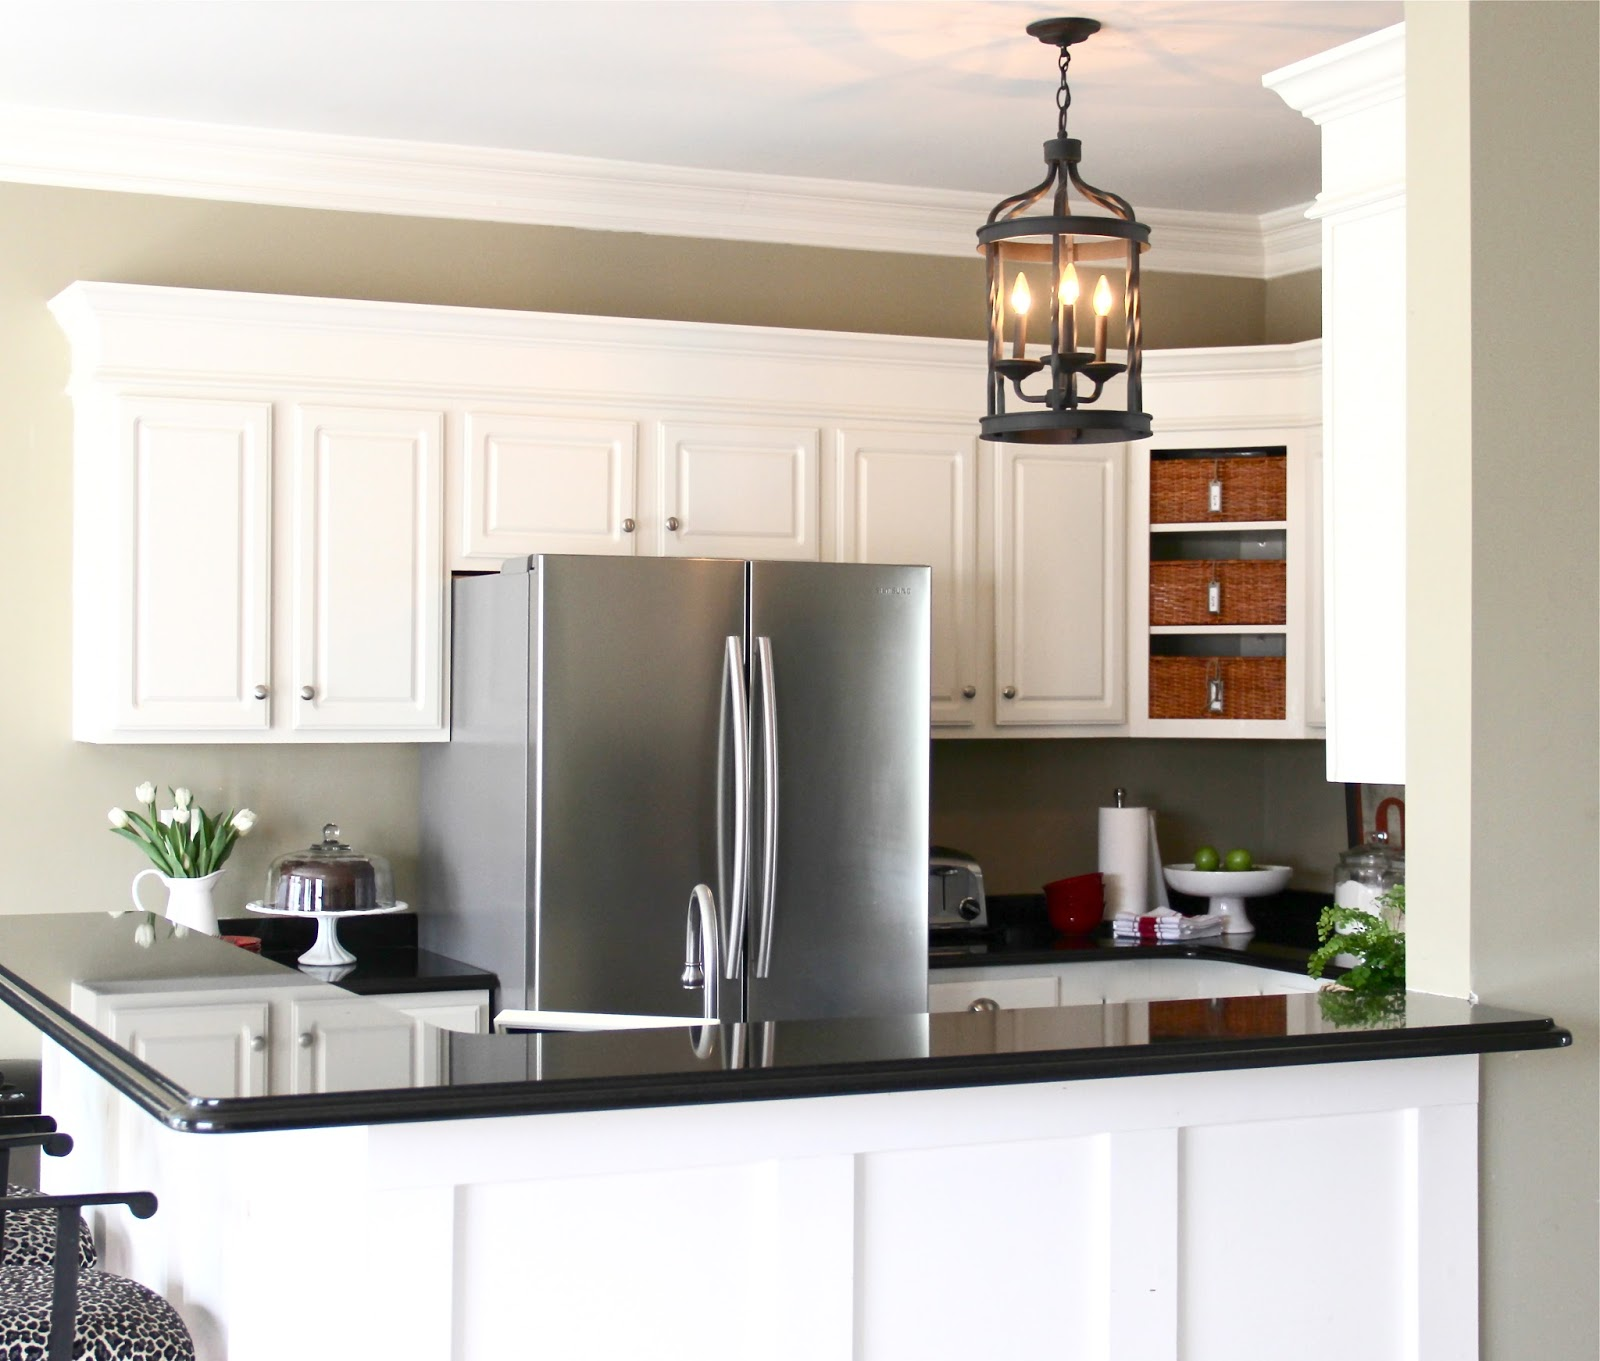 Kitchen Staging Before And After: The Yellow Cape Cod: Staging The Kitchen For Summer And A